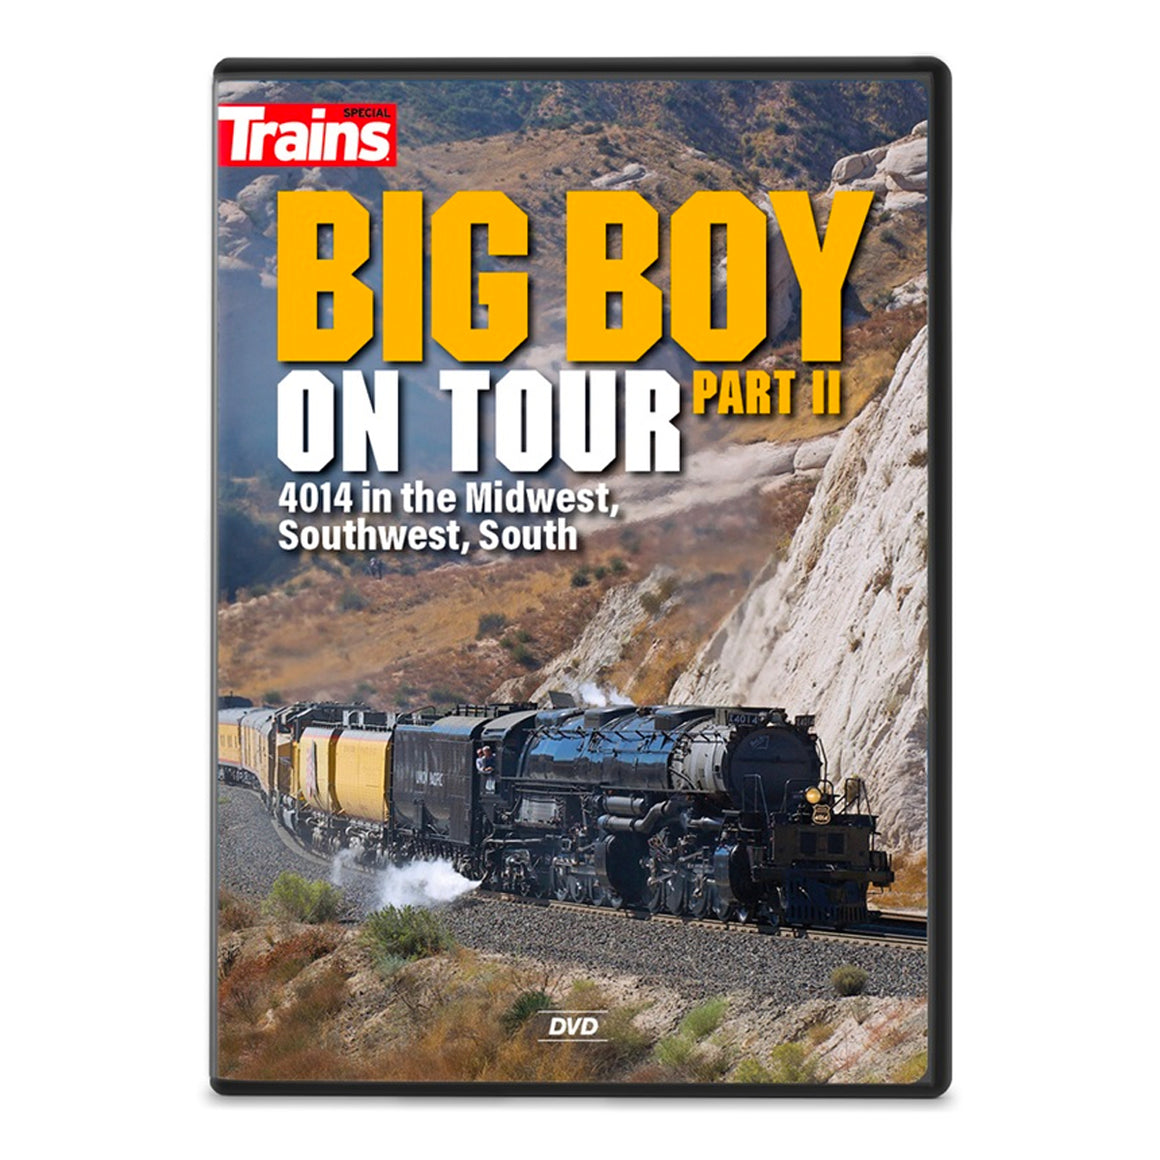 DVD: Big Boy on Tour Part II